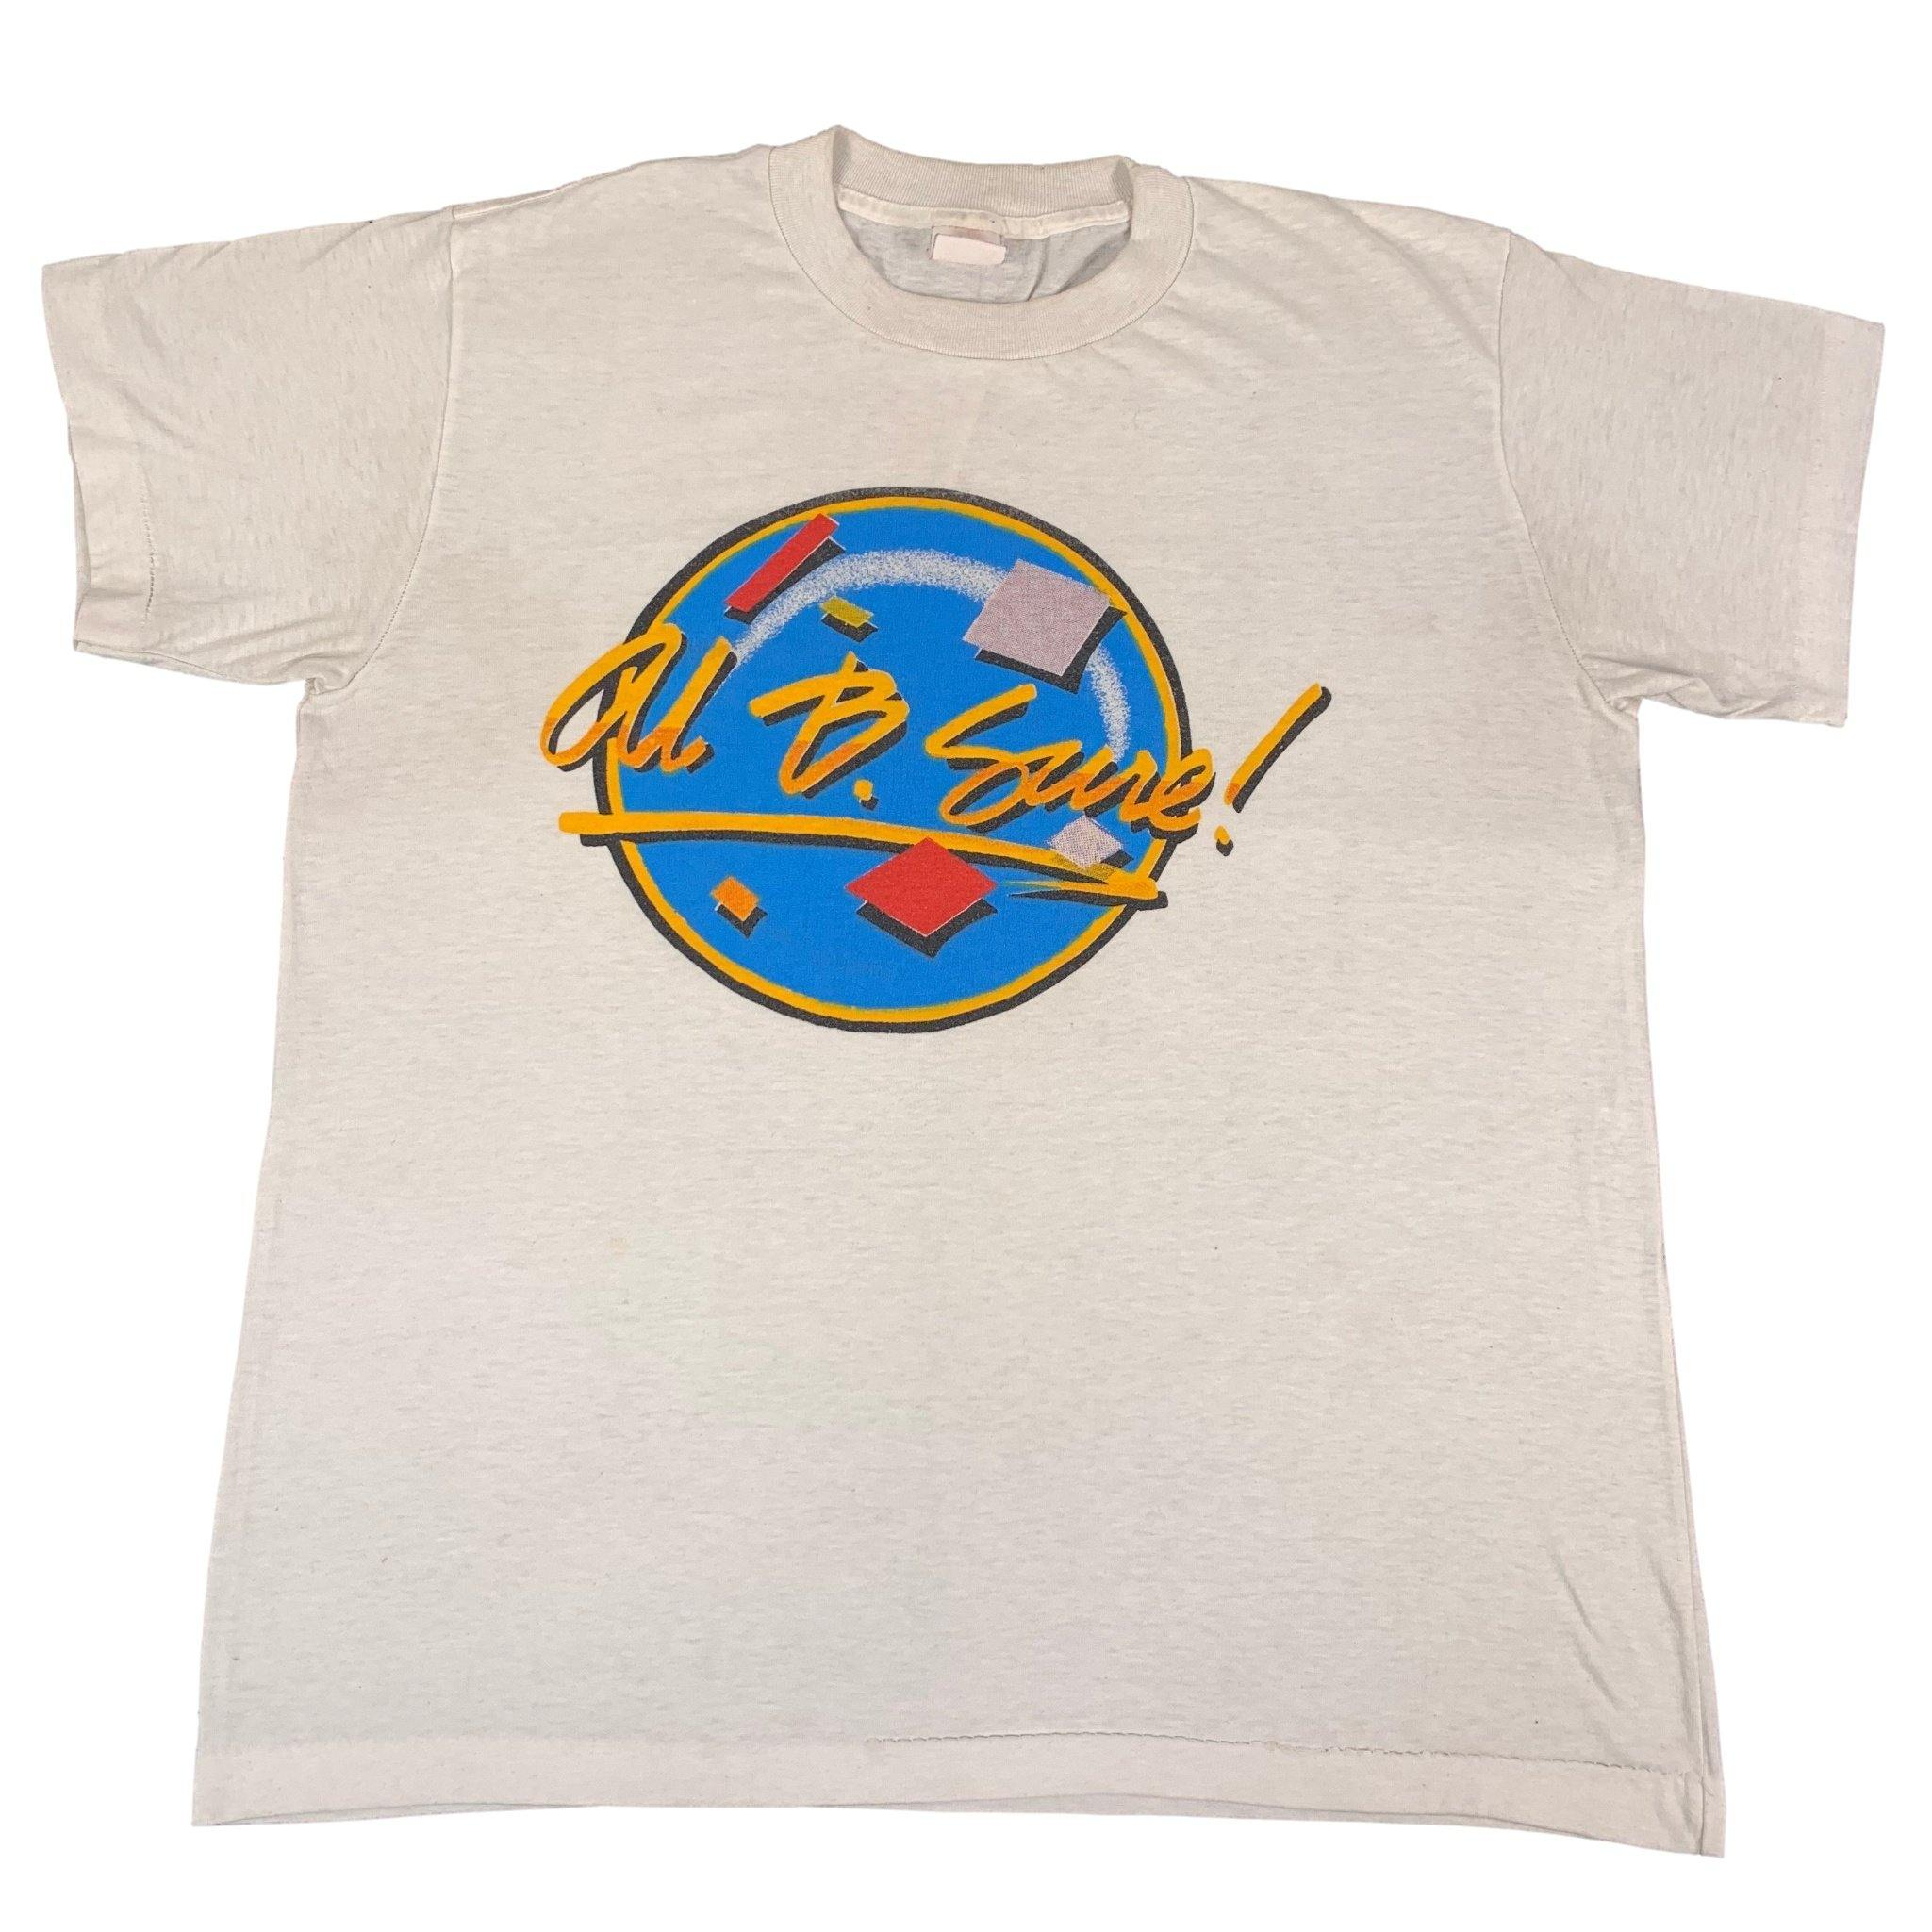 "Vintage Al B. Sure! ""In Effect Mode"" T-Shirt"